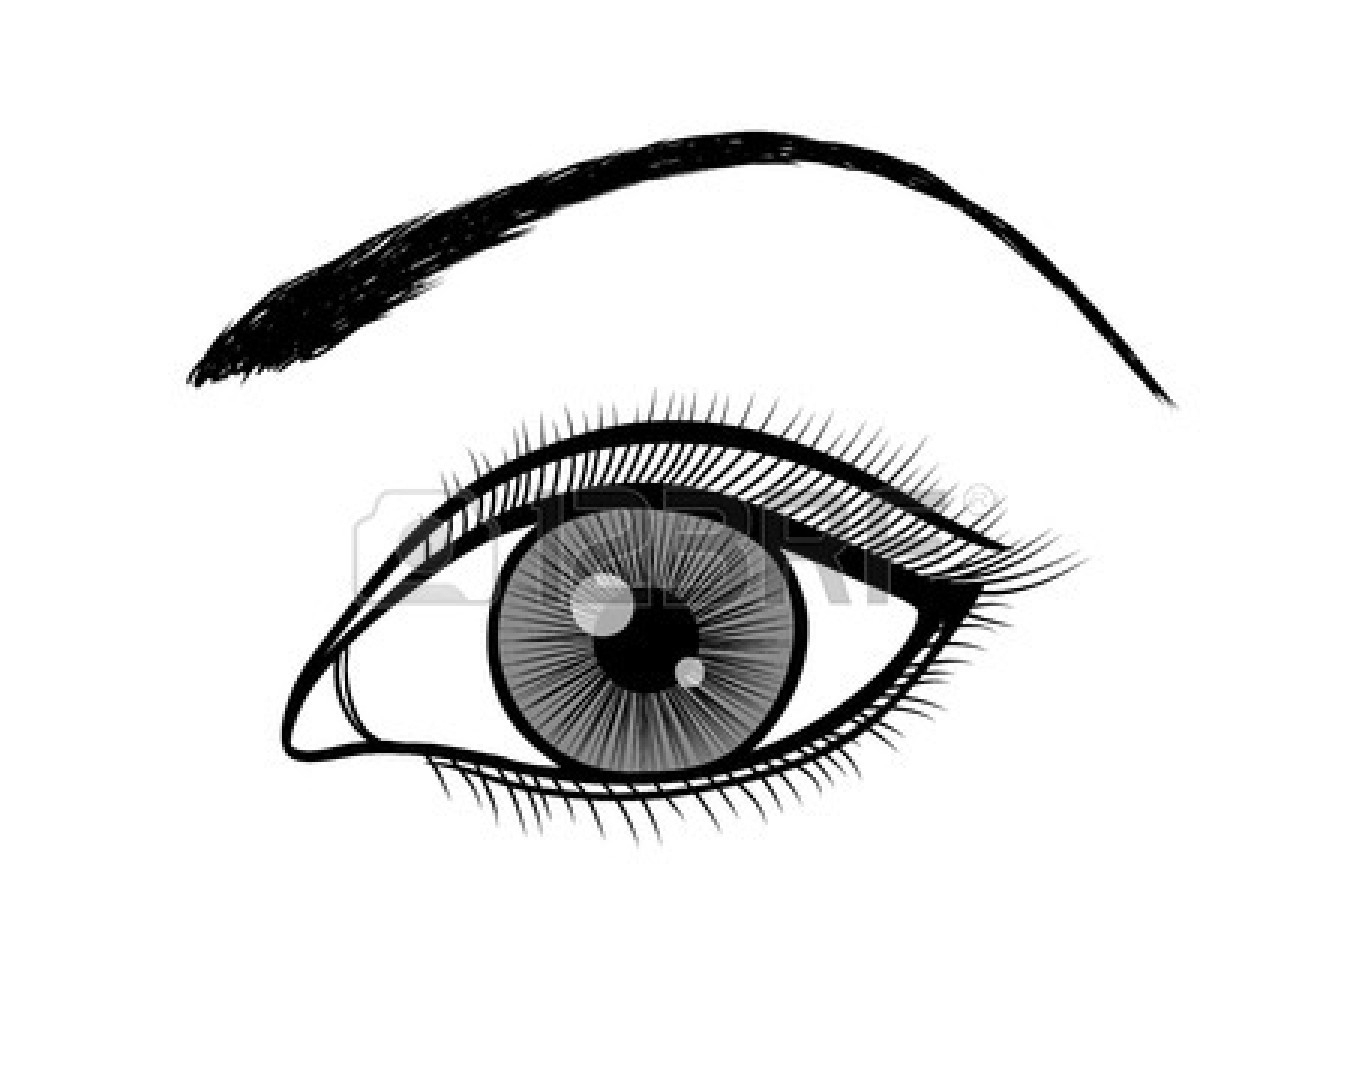 Beautiful eye clipart black and white jpg black and white stock 20+ Eye Clipart Black And White | ClipartLook jpg black and white stock